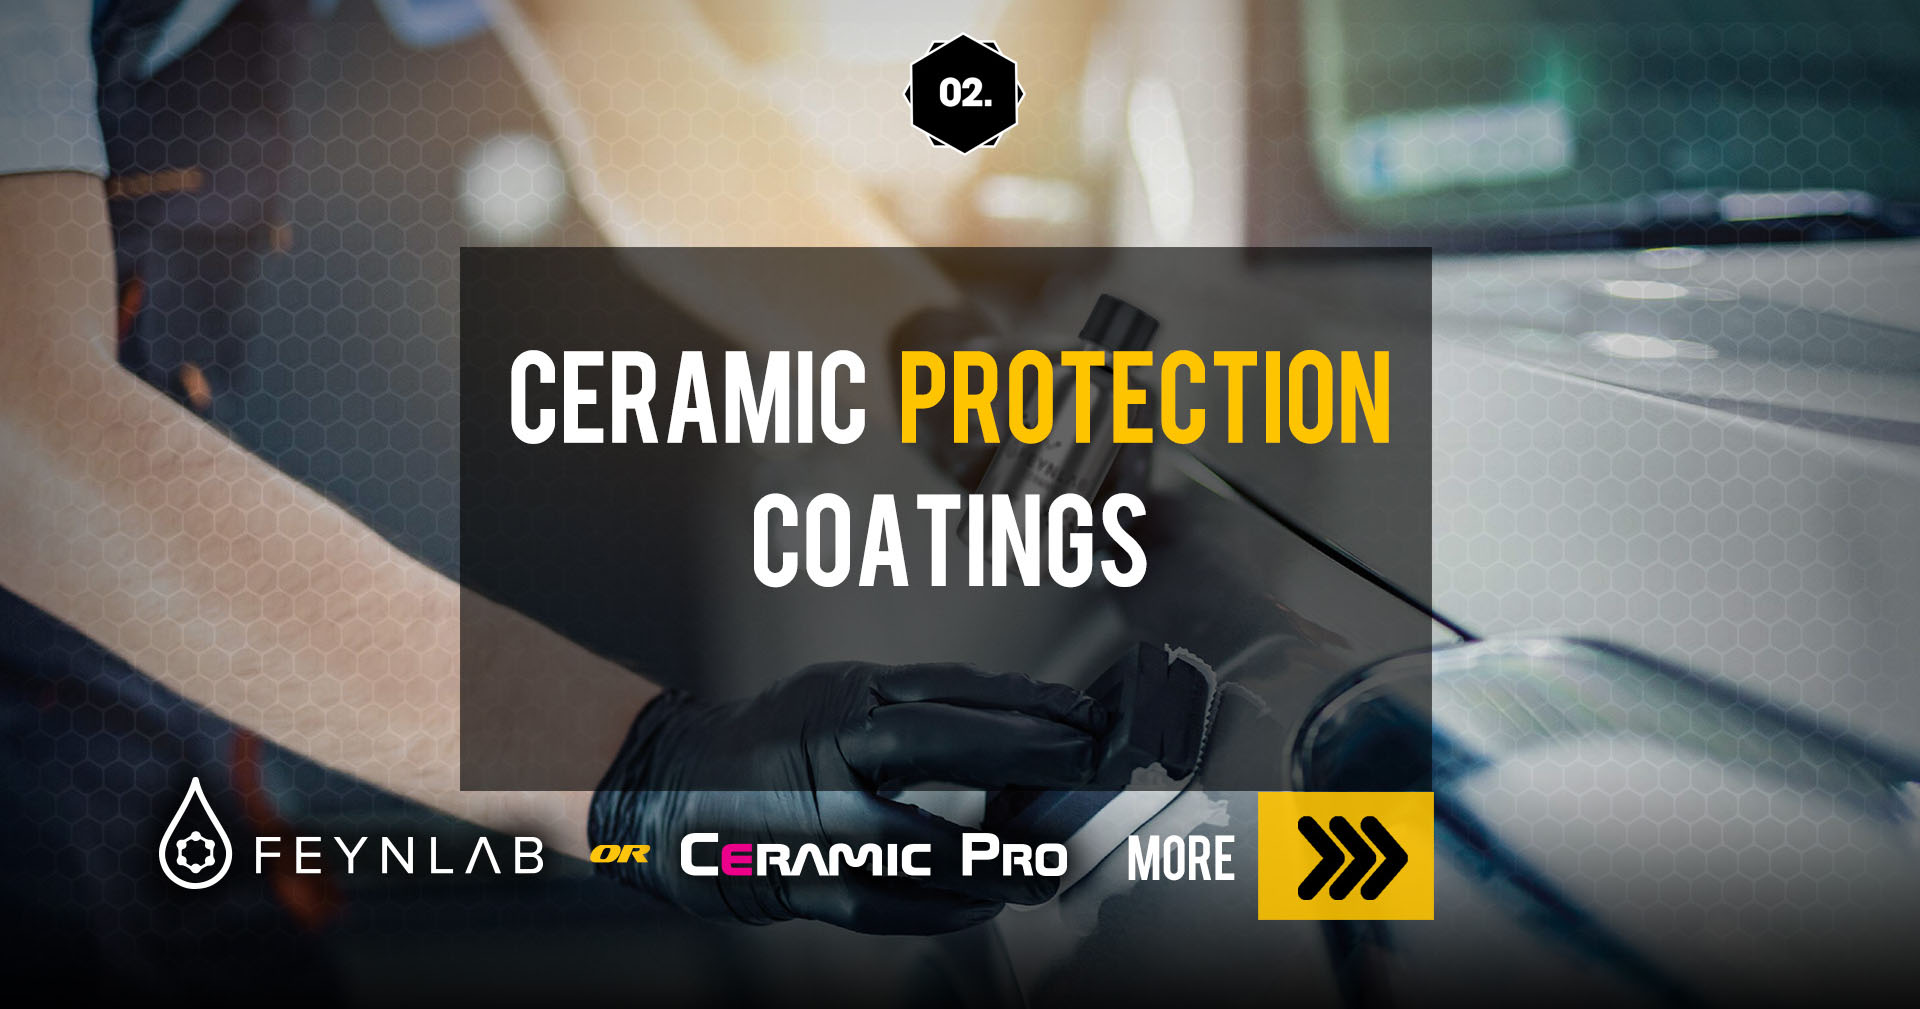 Ceramic Protection Coatings